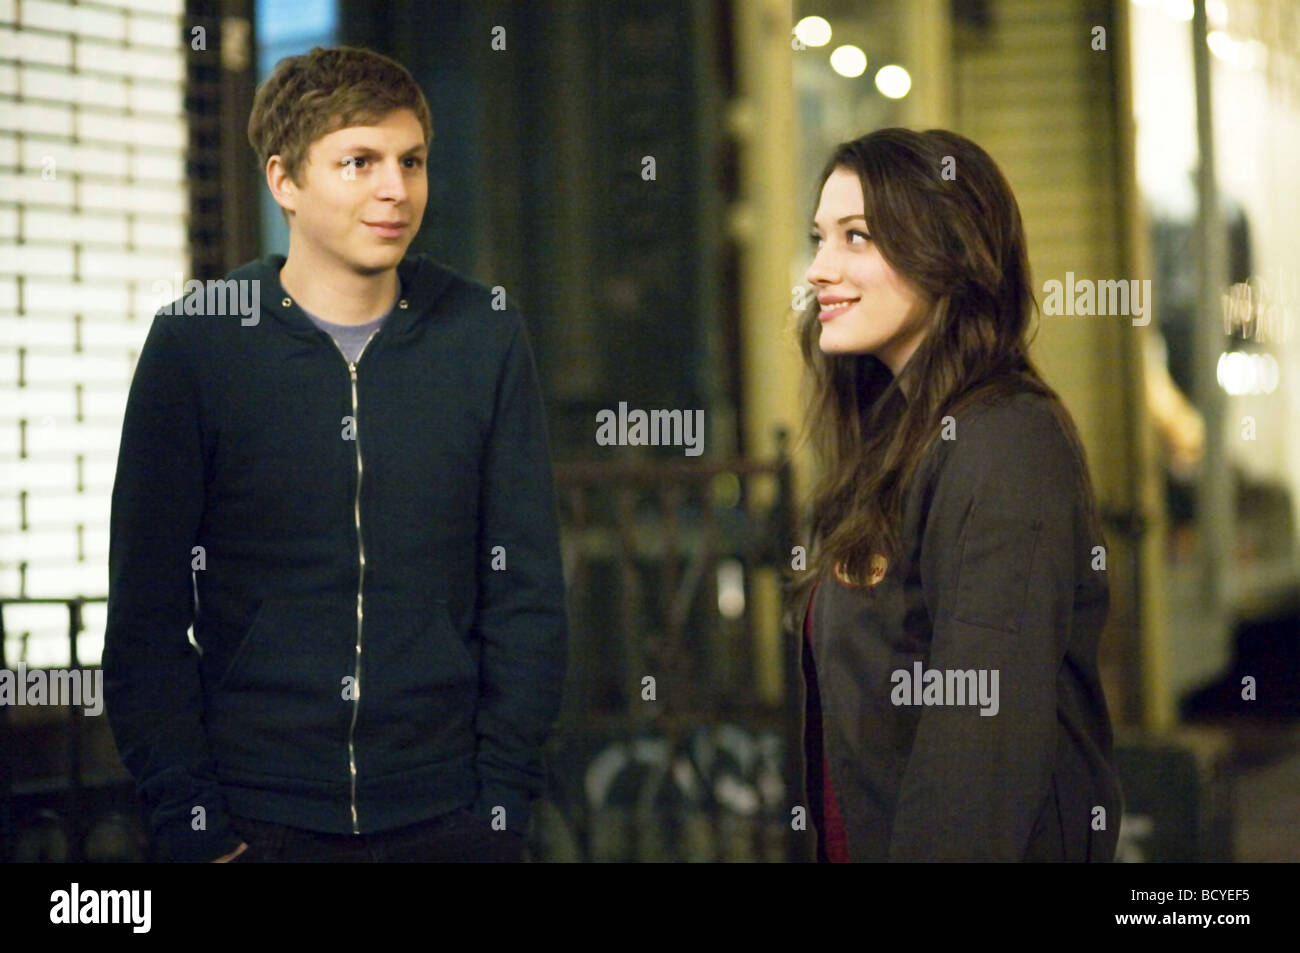 Nick and Norah's infinite Playlist Year : 2008 Director : Peter Sollett Michael Cera, Kat Dennings - Stock Image